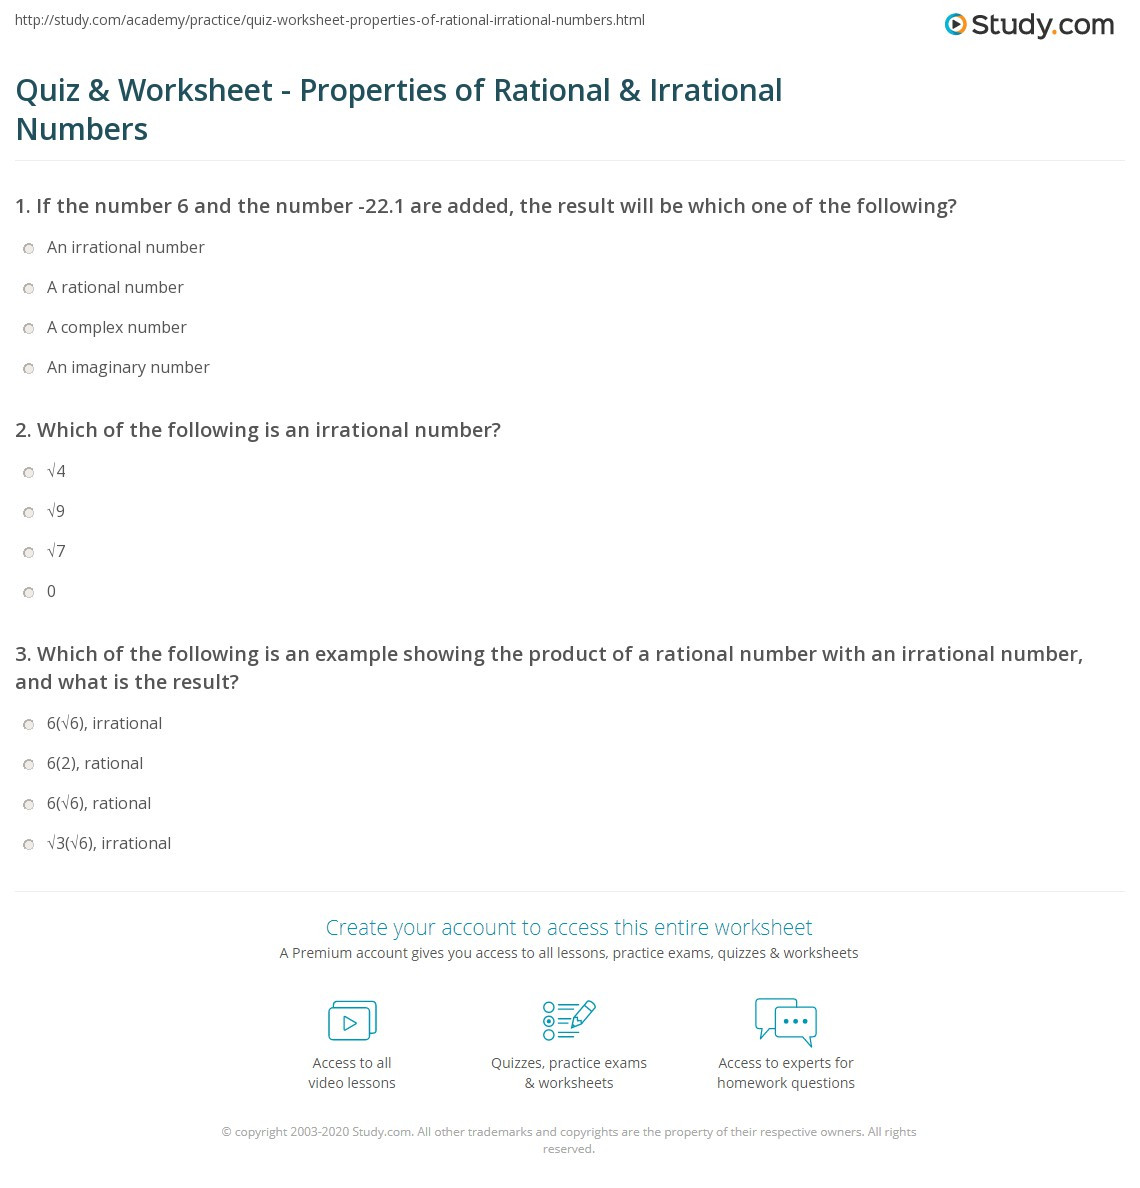 Rational and Irrational Numbers Worksheet